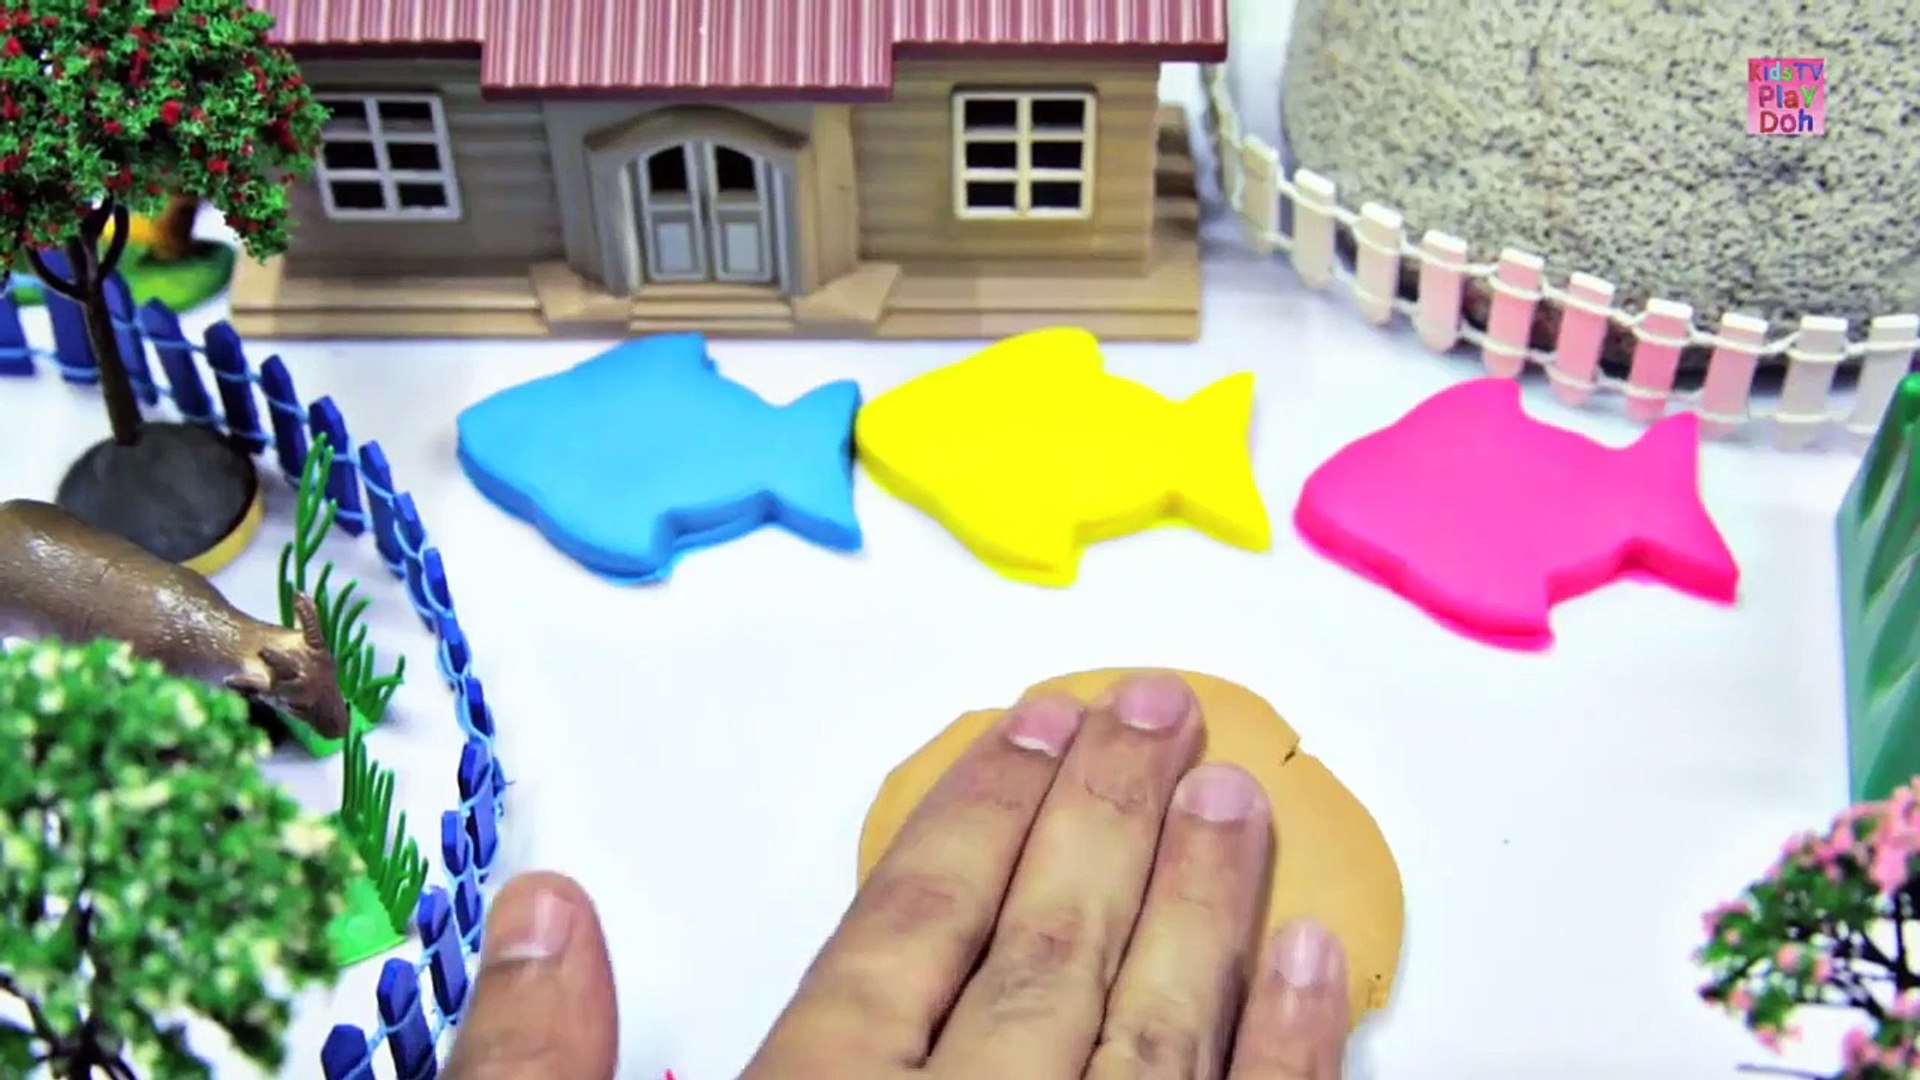 Learn Colors With Play Doh _ Play Doh Videos fo Kids _ Kids Learning Videos  _ Play Doh Fish